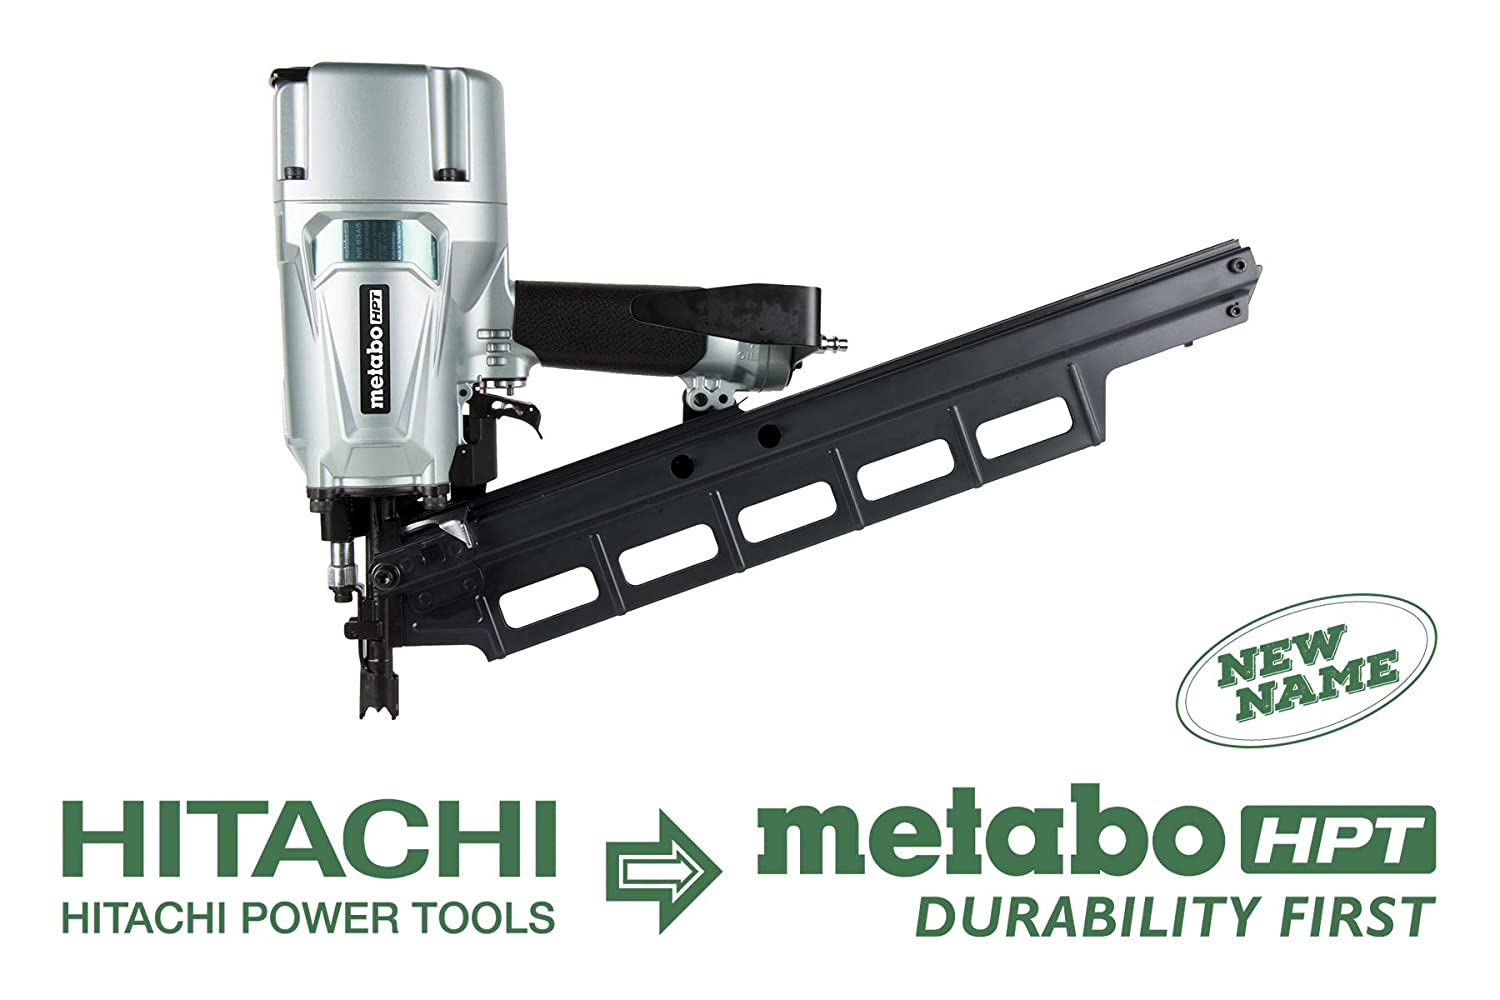 Metabo HPT NR83A5 Pneumatic Framing Nailer, 2-Inch up to 3-1/4-Inch Plastic Collated Full Head Nails, Tool-less Depth Adjustment, 21 Degree Magazine, Selective Actuation Switch, 5-Year Warranty